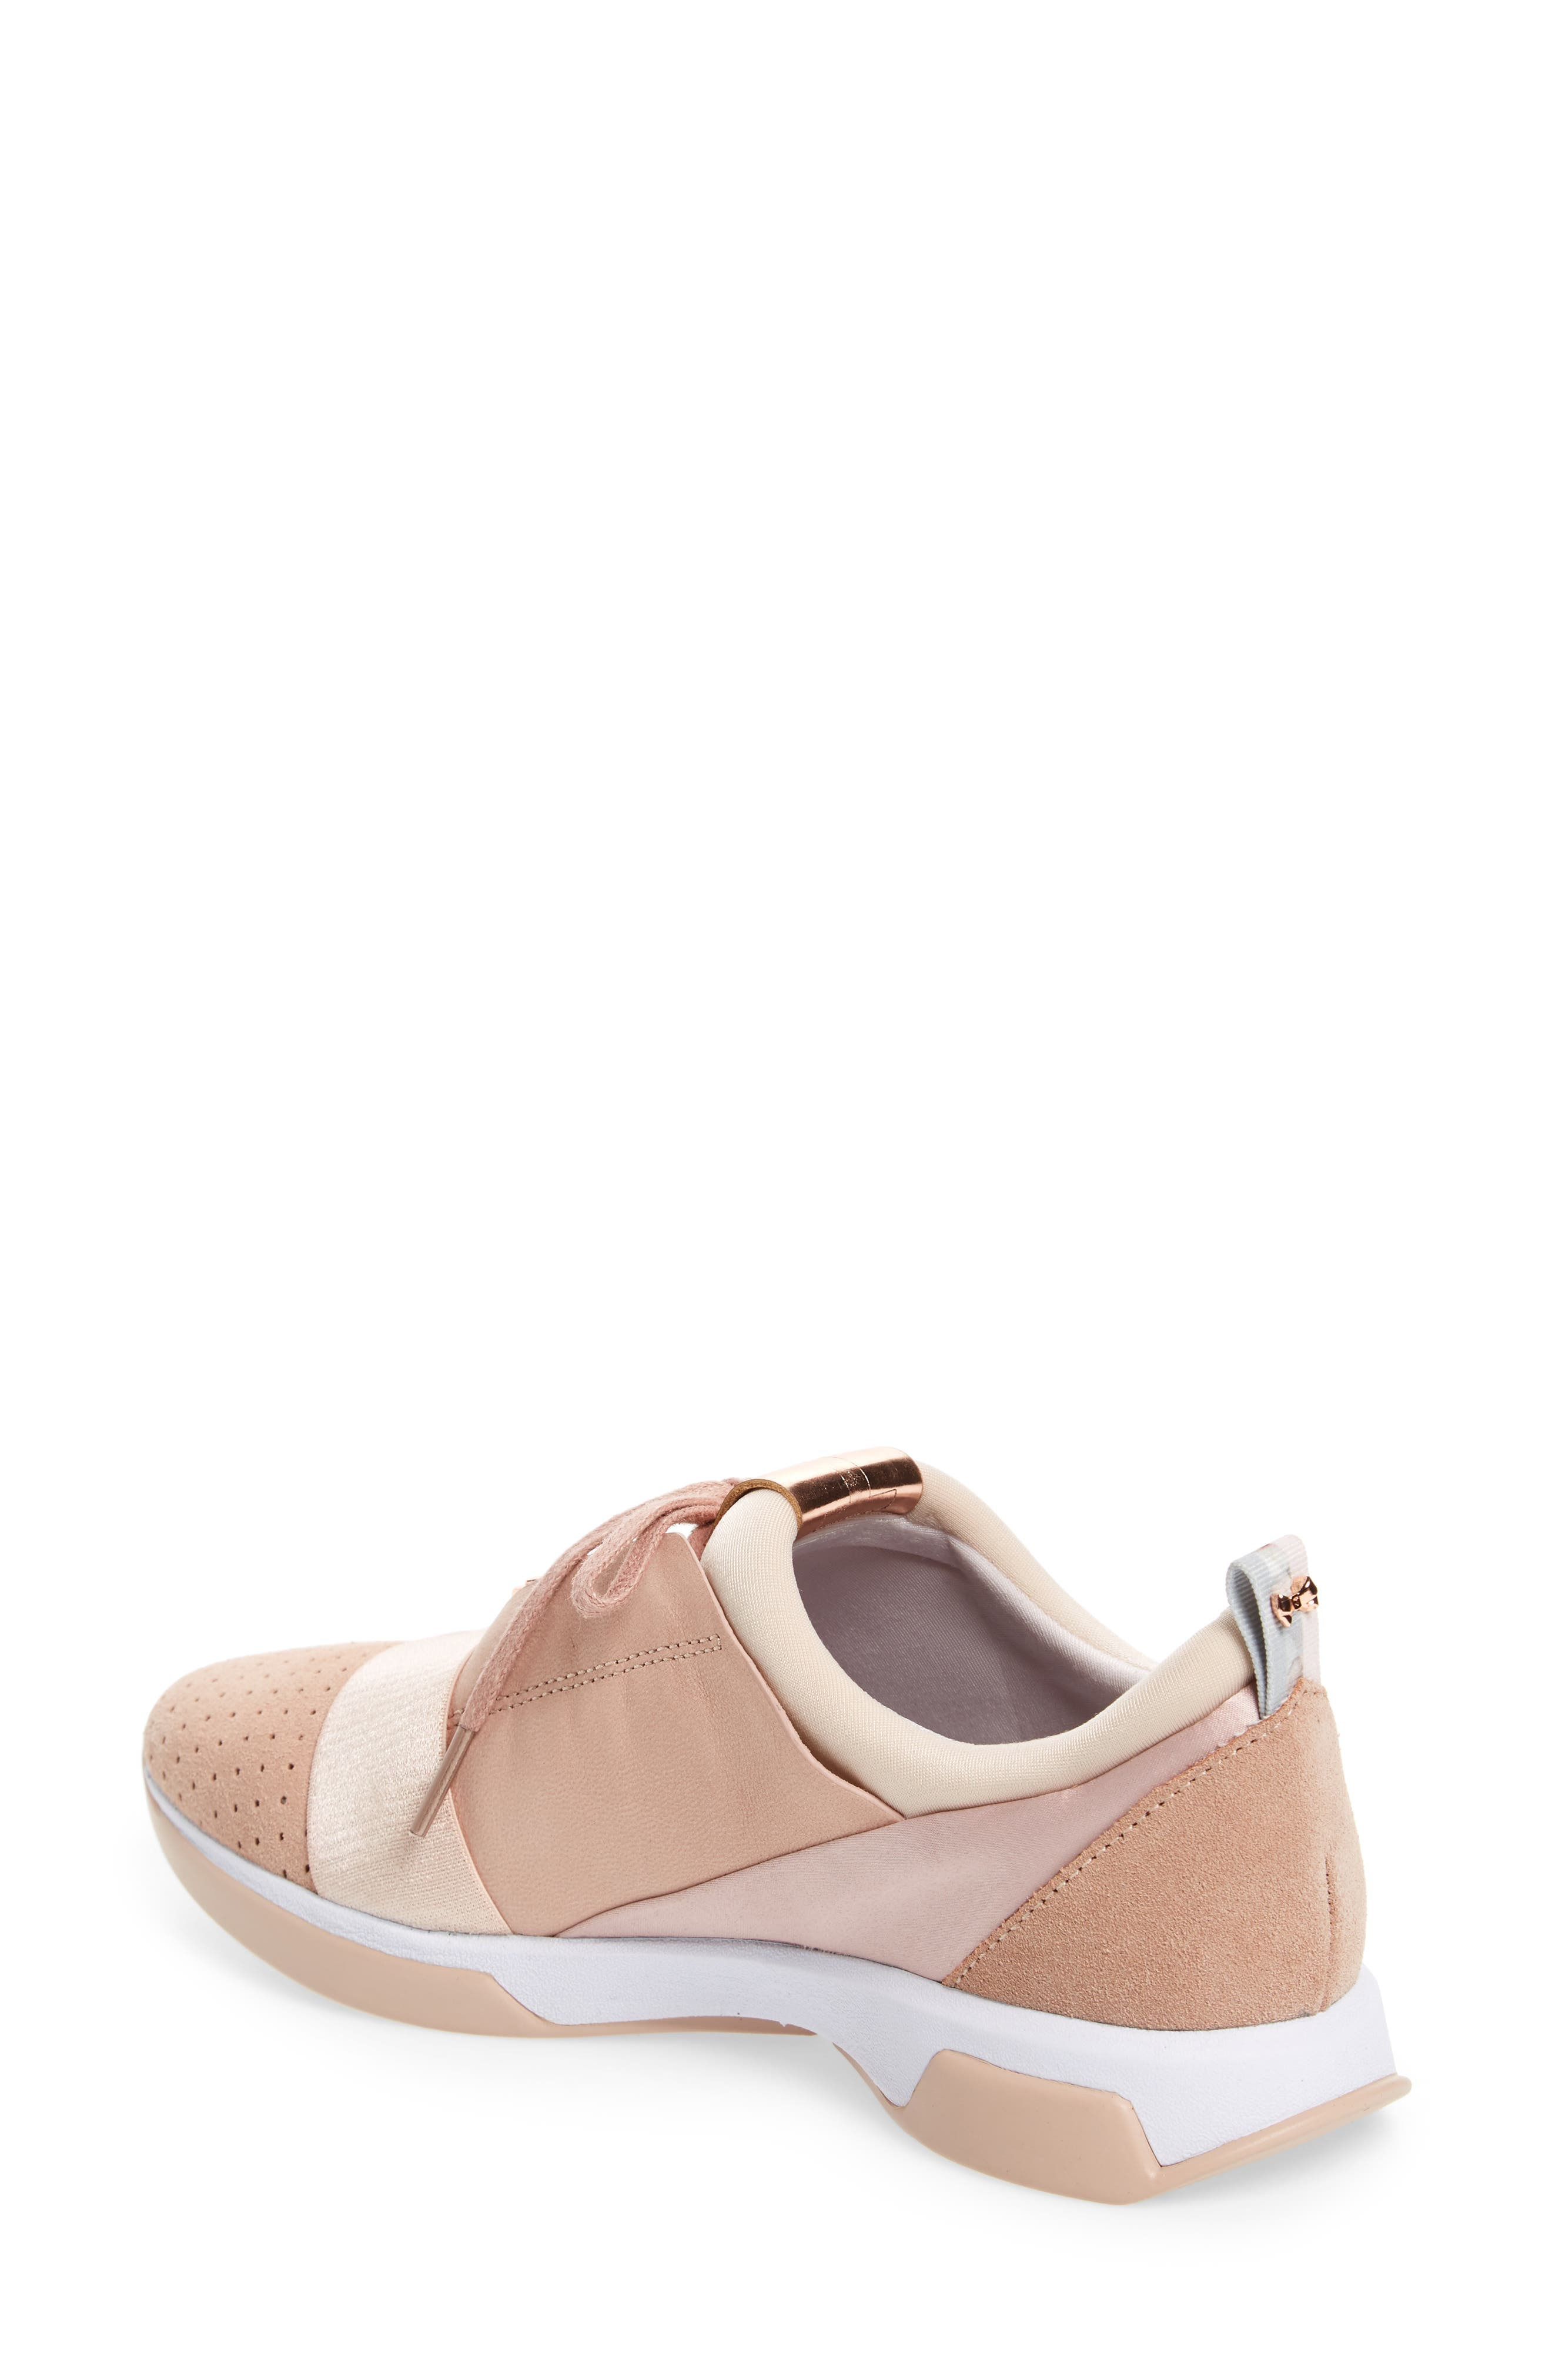 b7e2dd839 Ted Baker Women s Shoes